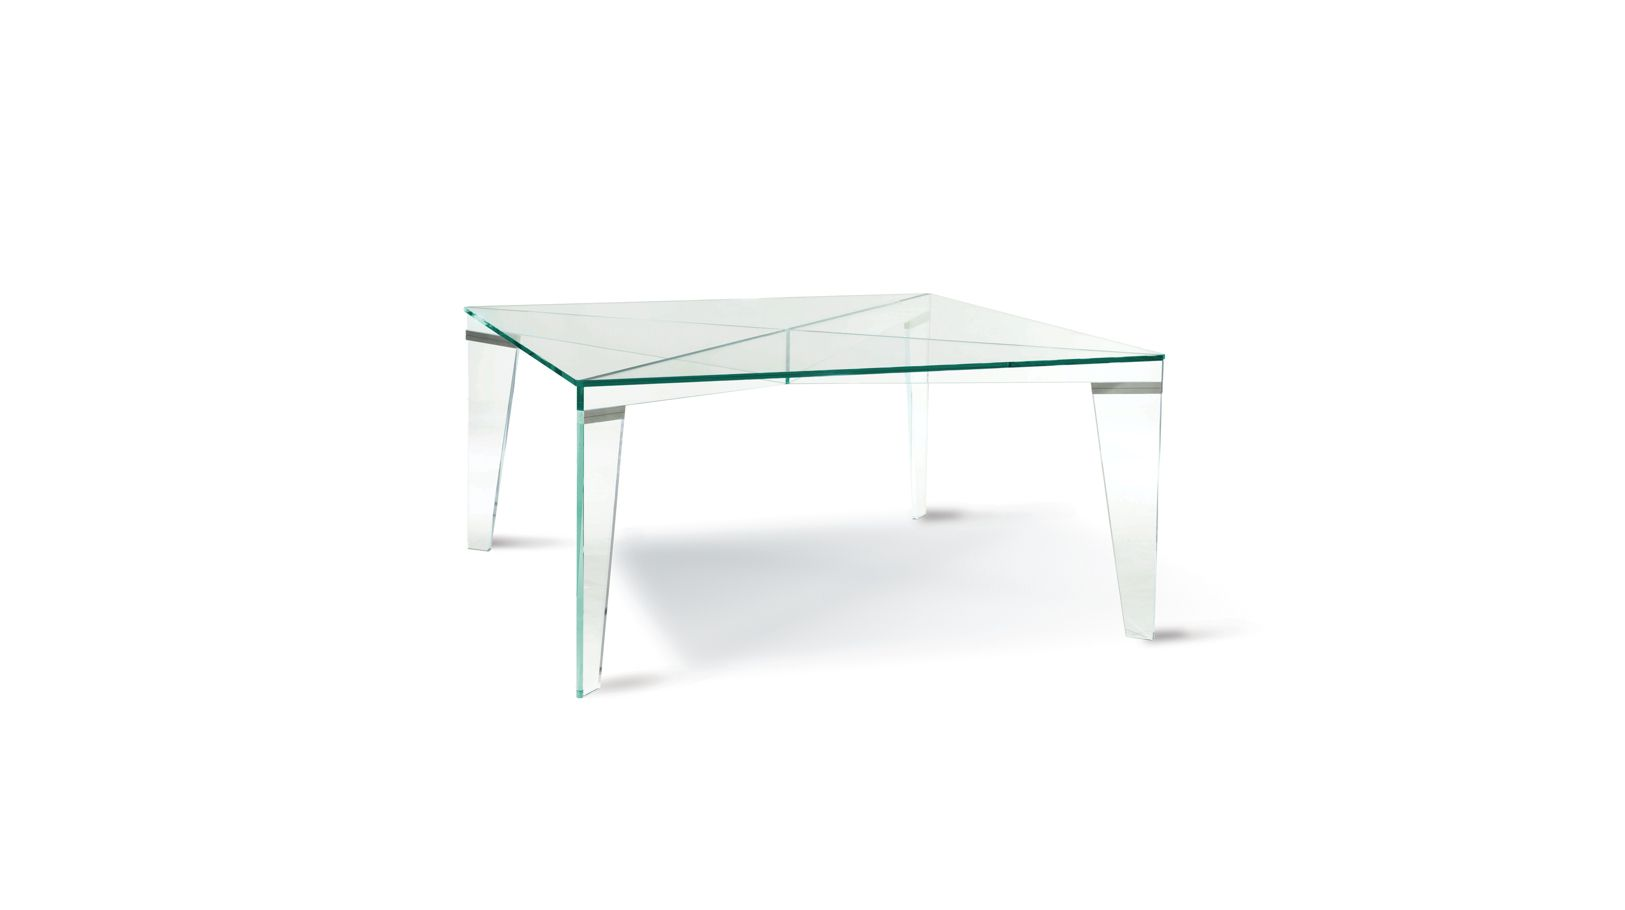 Best table ardoise roche bobois images awesome interior - Table ovale marbre roche bobois ...